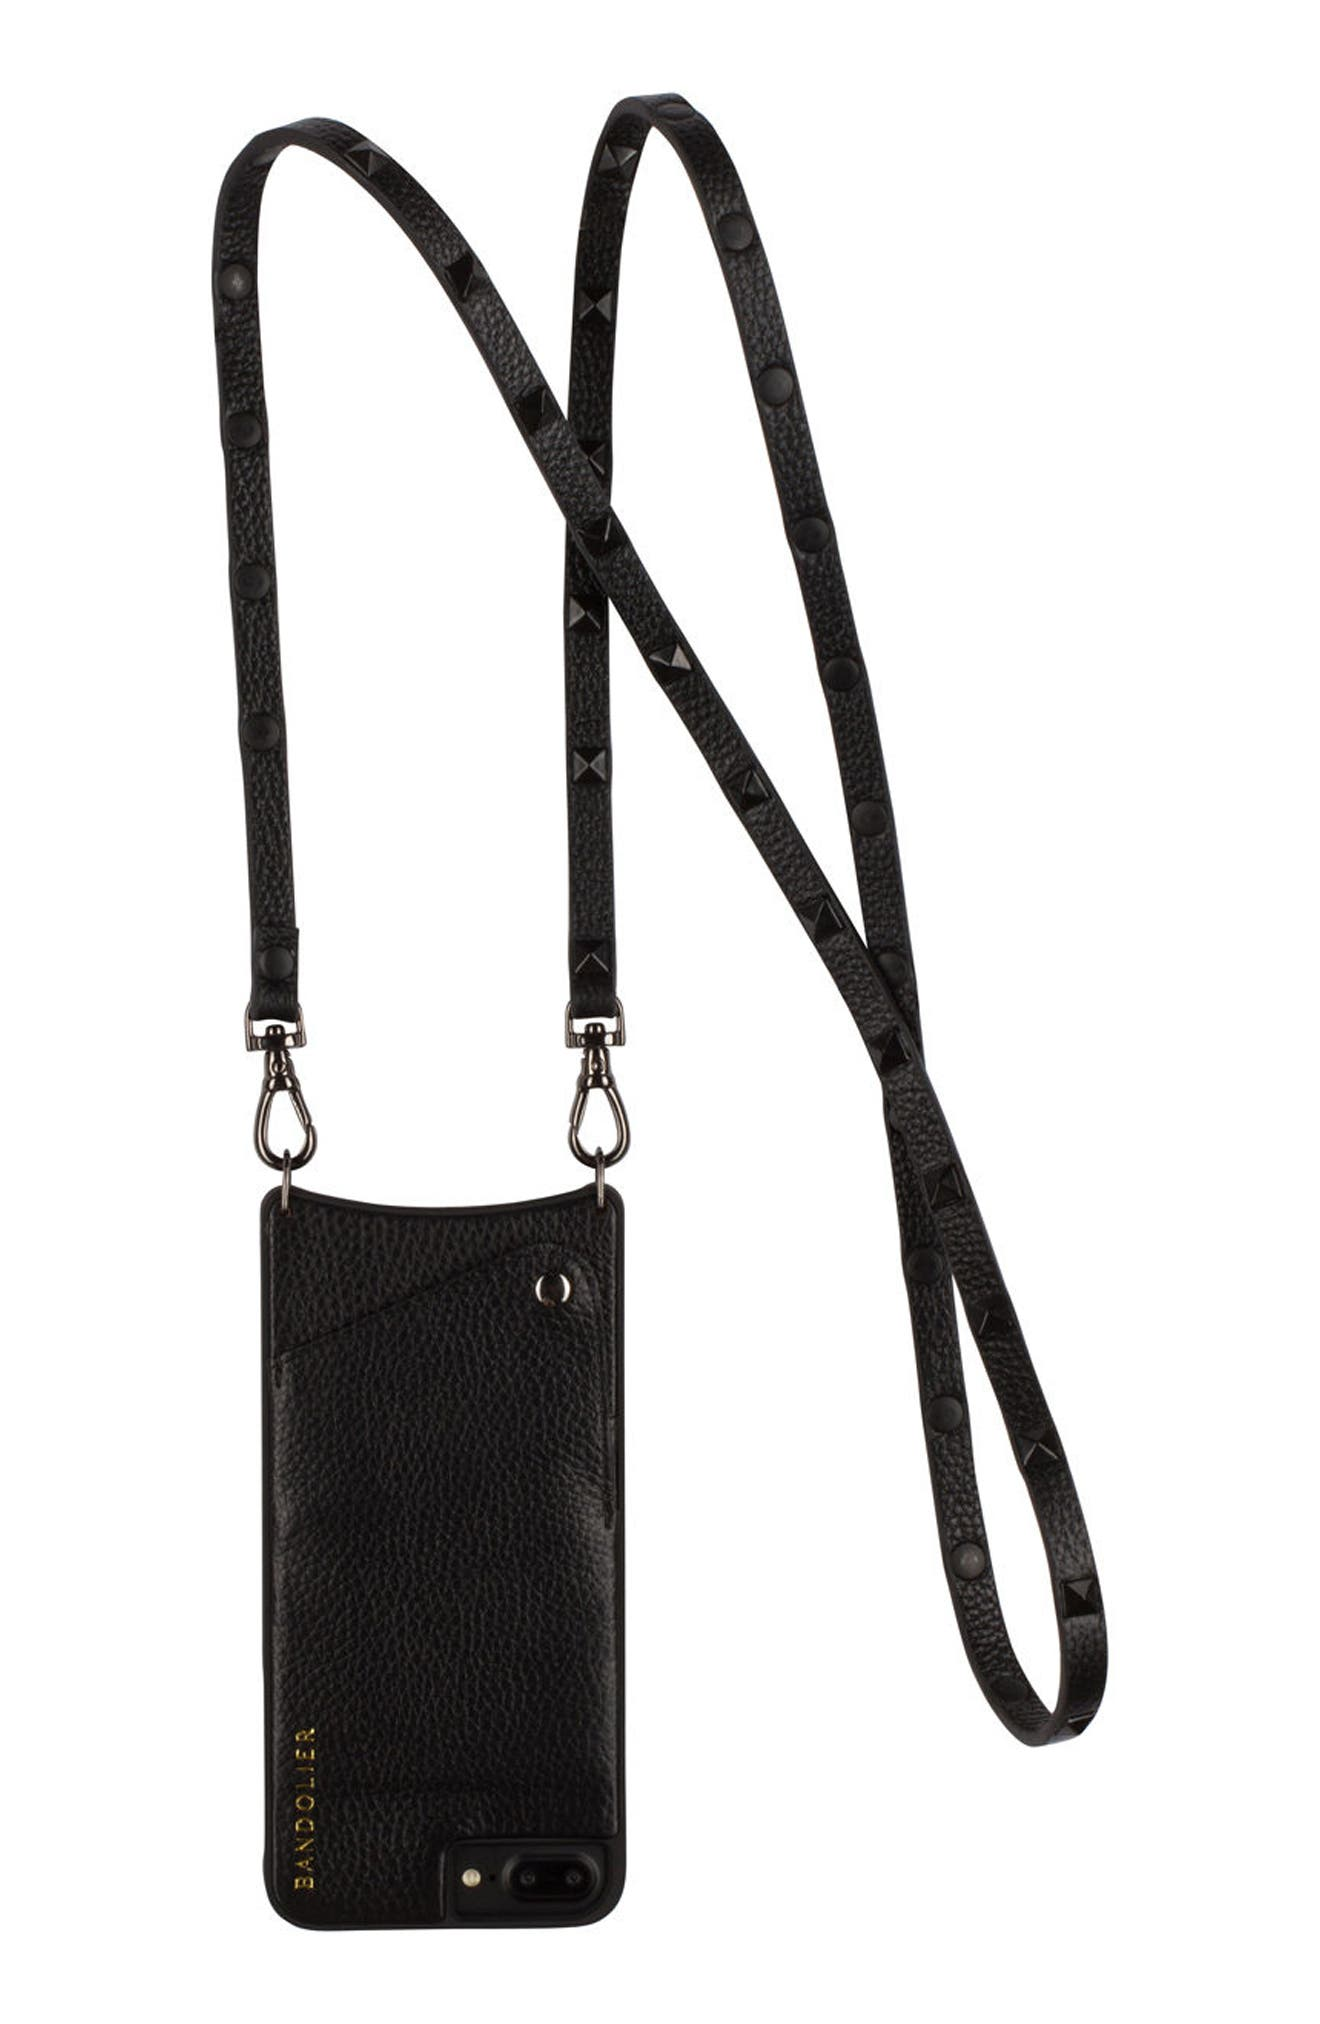 Bandolier Sarah Leather iPhone 6/7/8 & 6/7/8 Plus Crossbody Case